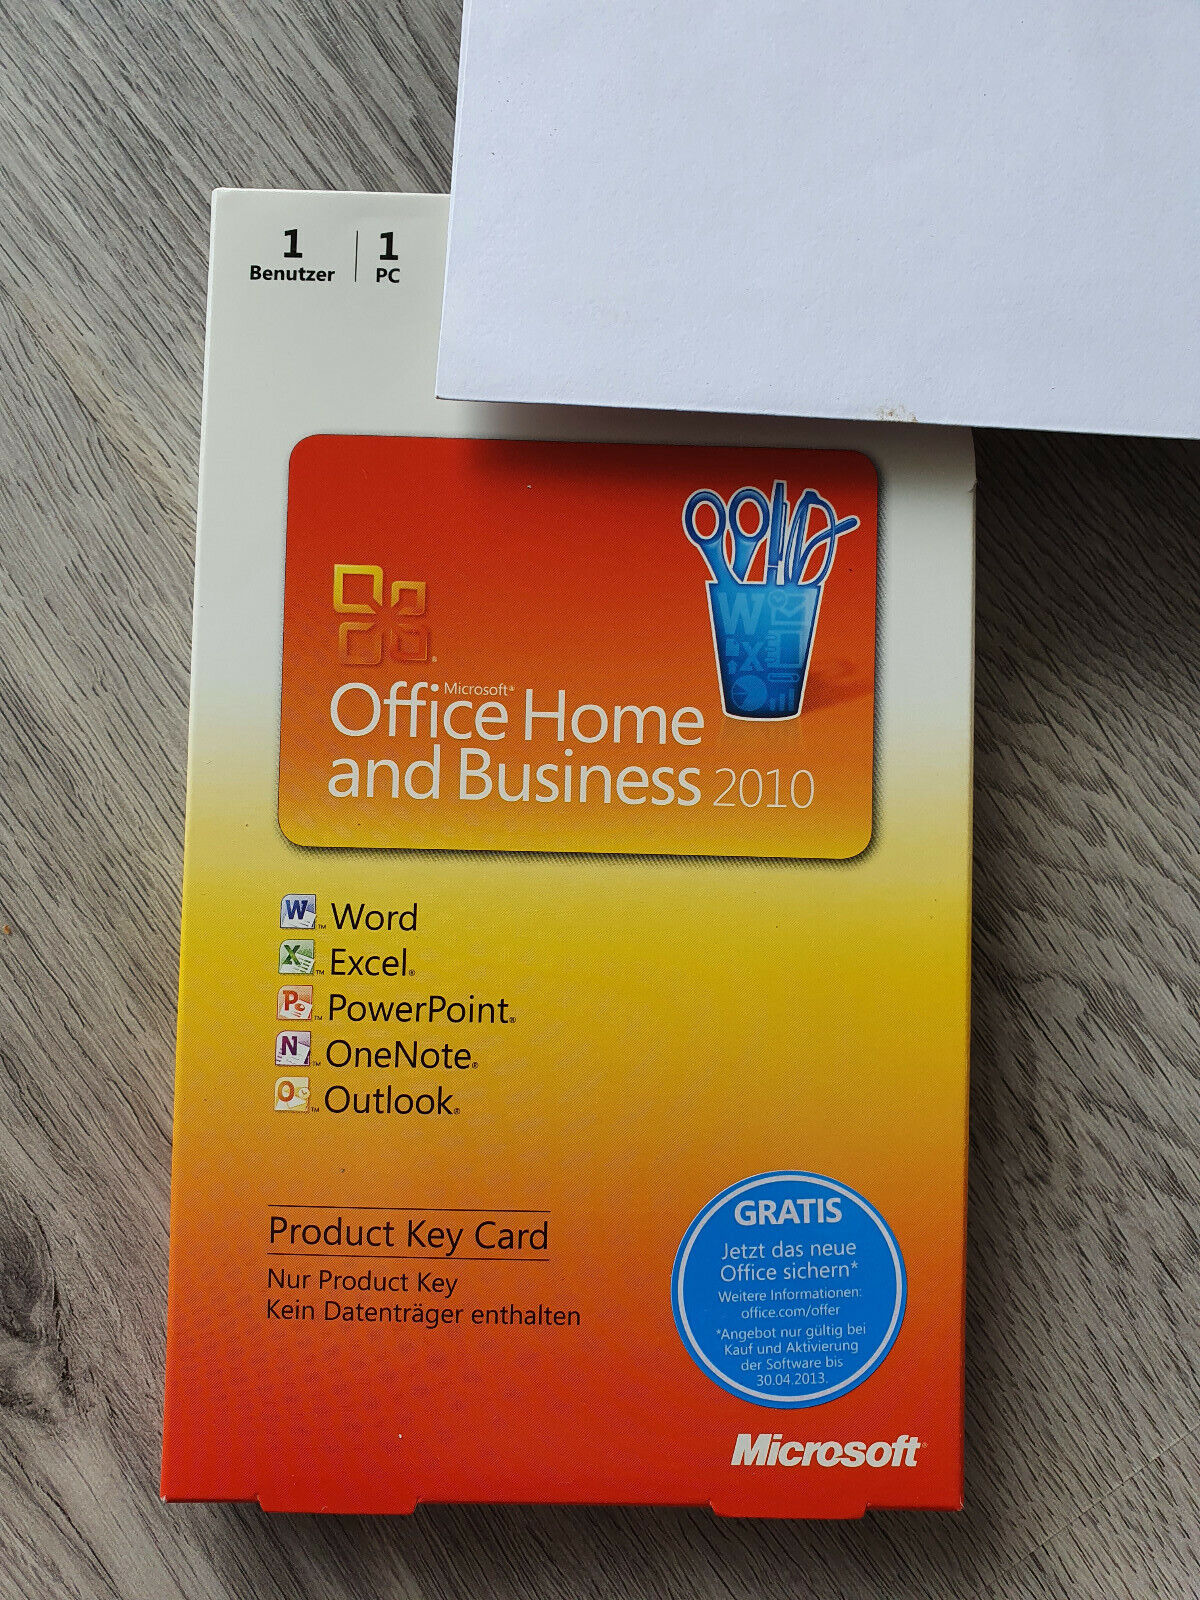 Microsoft Office 2010 Home and Business, Vollversion, 32/64 Bit, Key, 1 PC